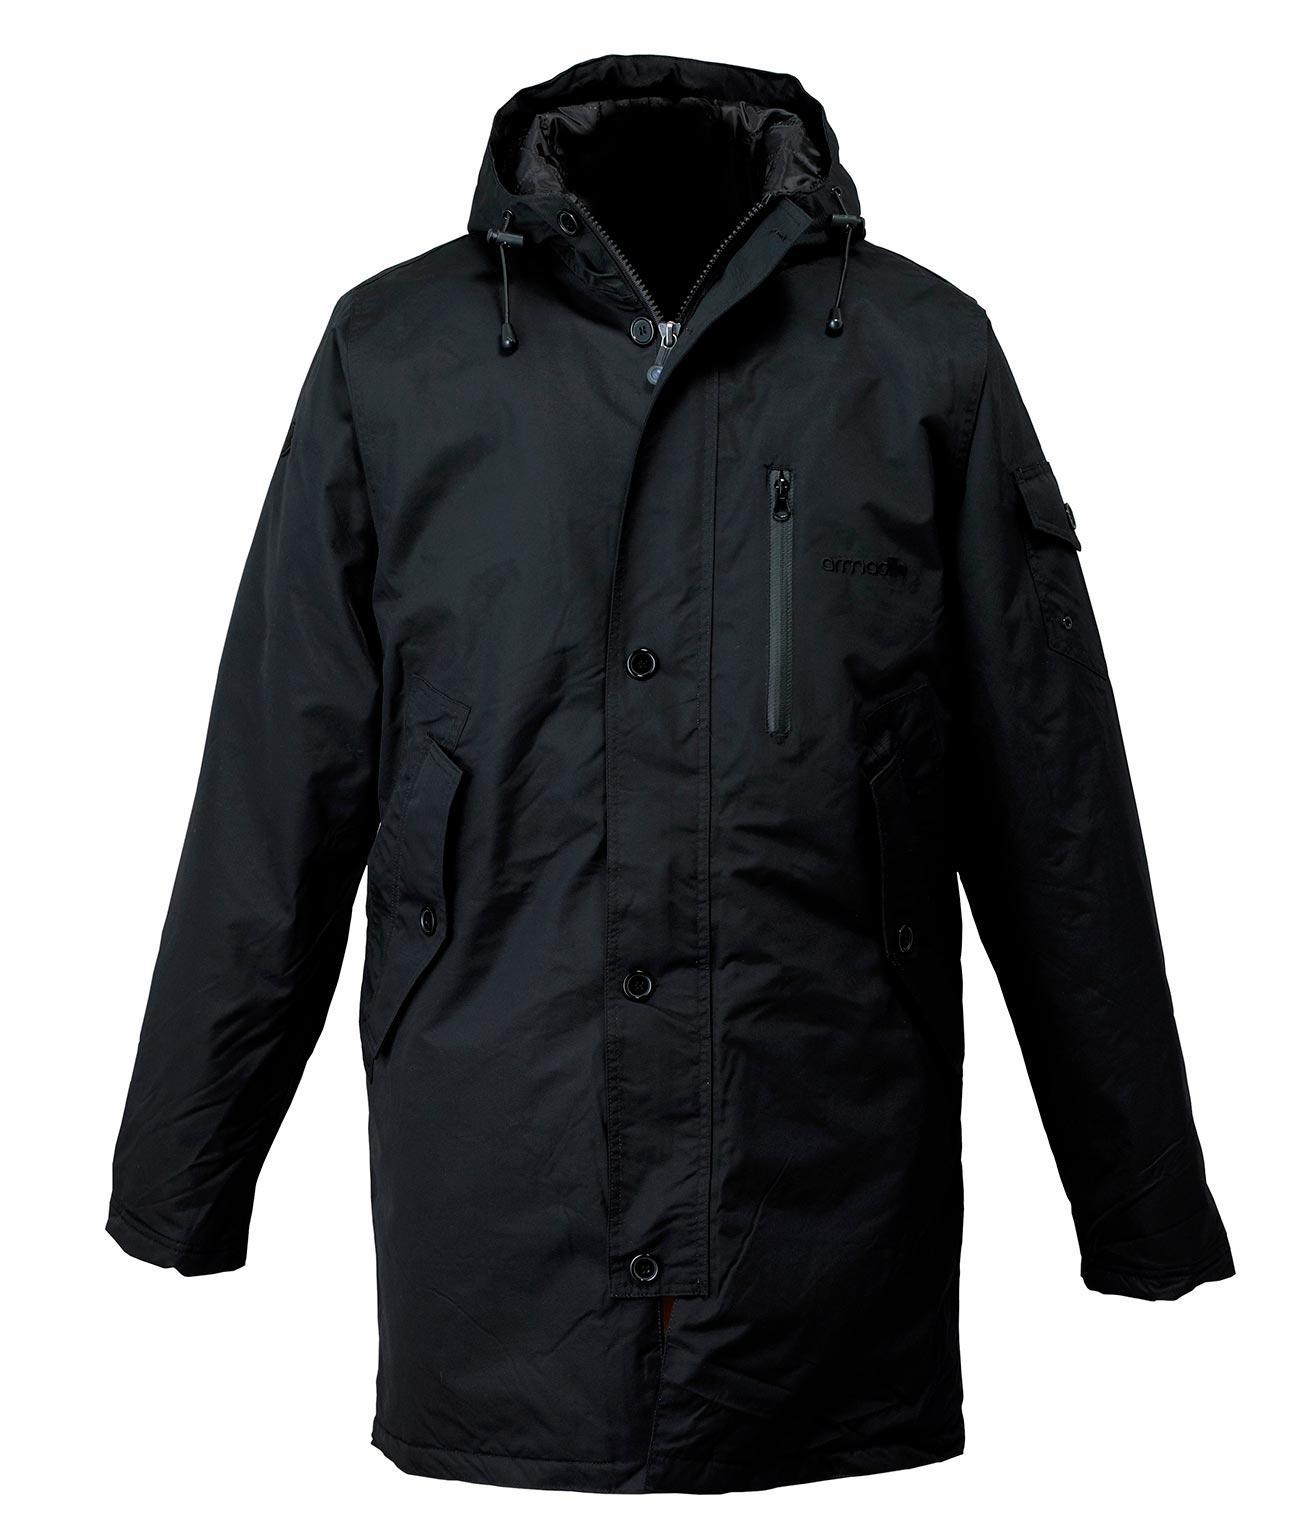 Men's Parka - Black